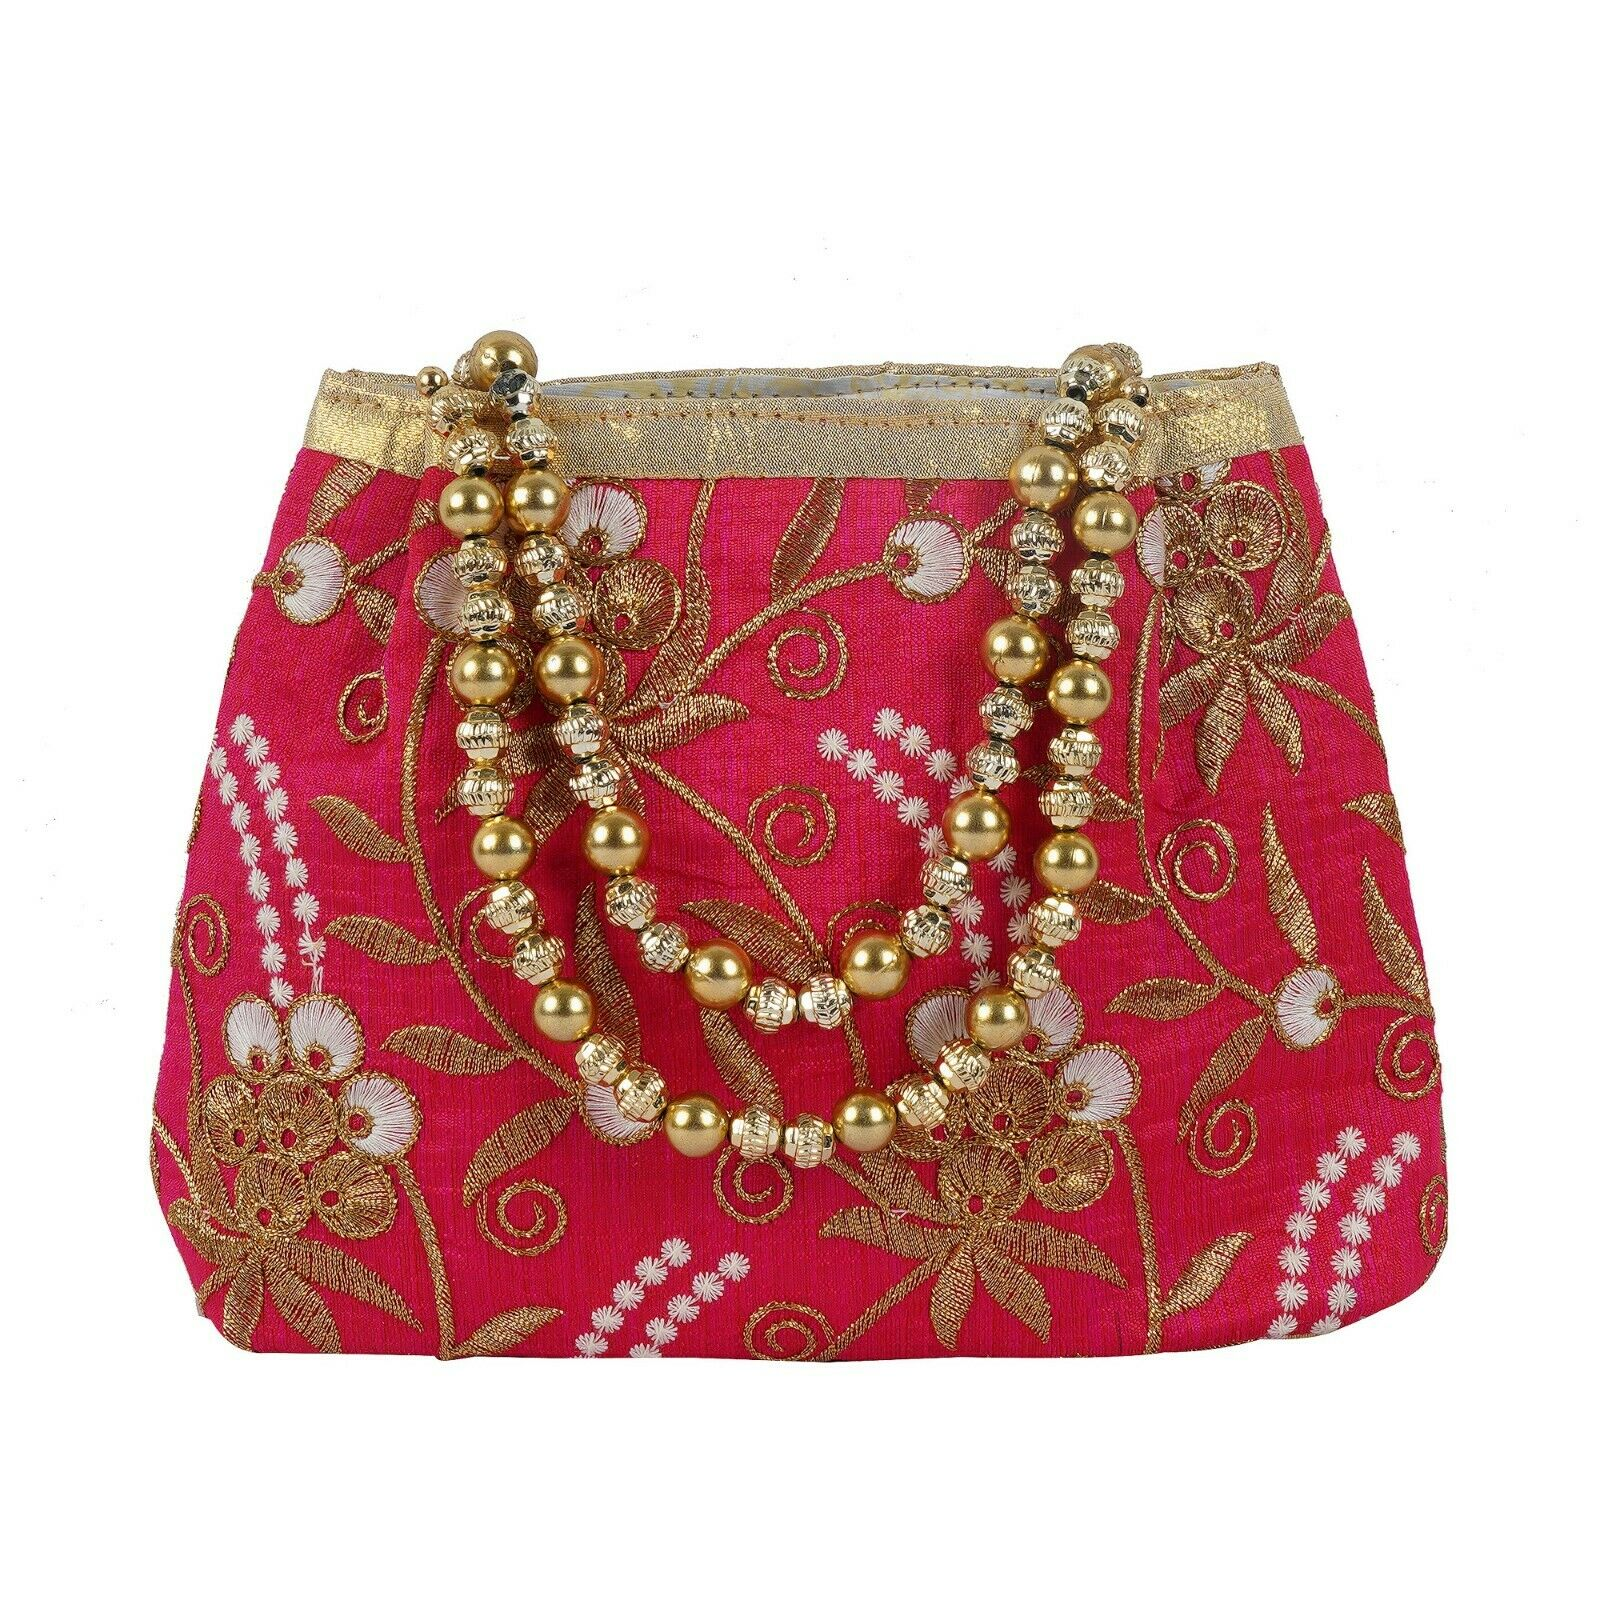 Rajasthani Style Royal Clutch Silk hand Bag Wristlets Ethnic For Women's